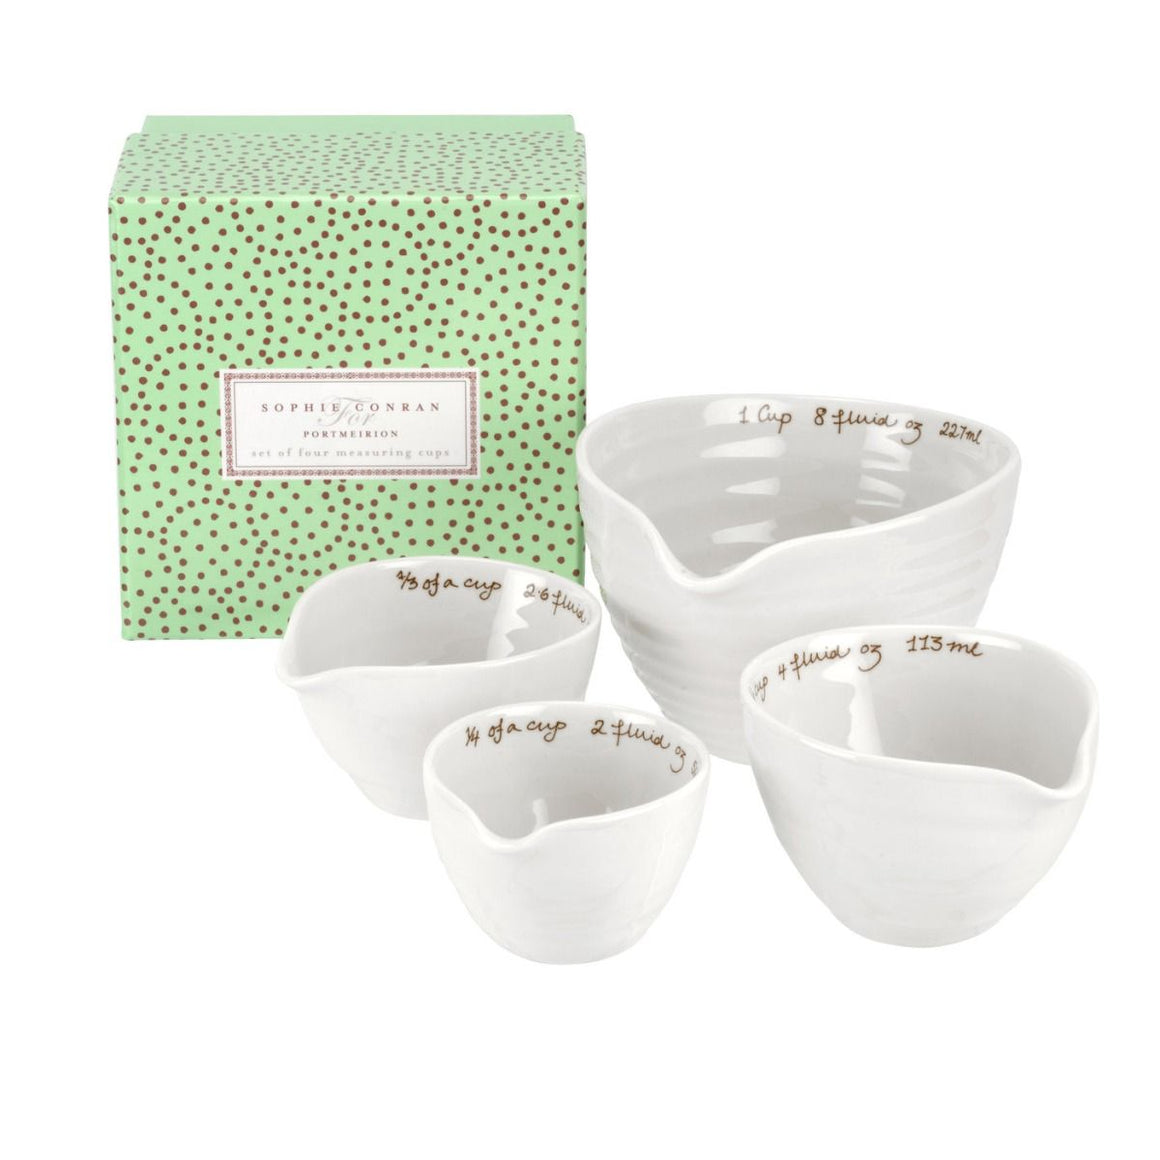 Sophie Conran Measuring Cups